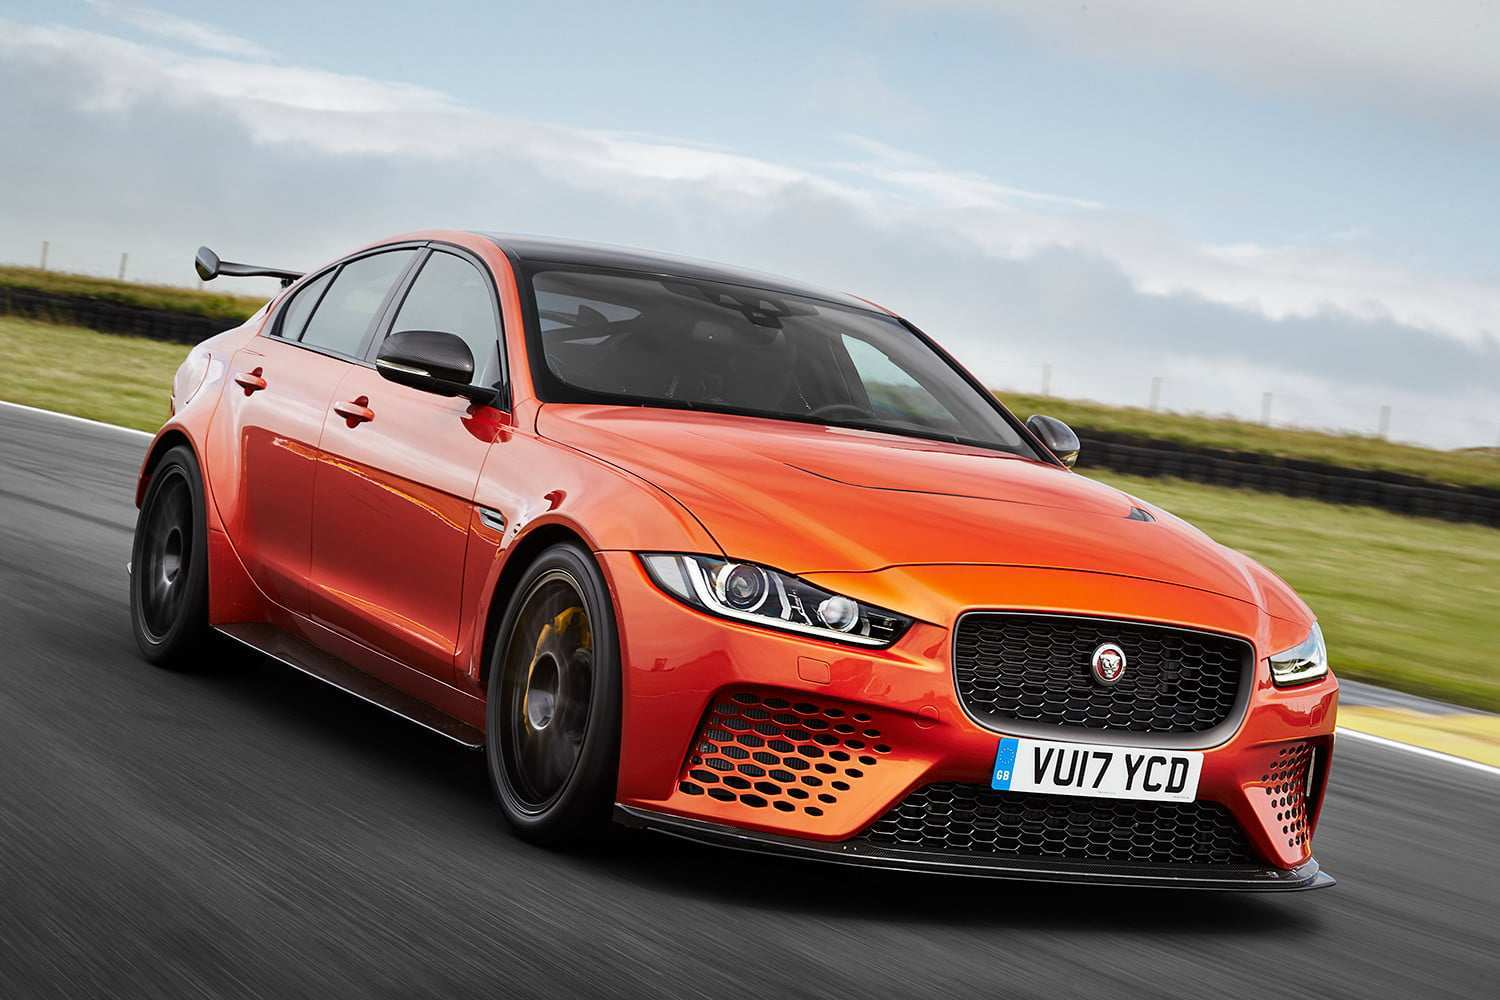 86 Gallery of 2020 Jaguar Xe Sv Project 8 Review for 2020 Jaguar Xe Sv Project 8